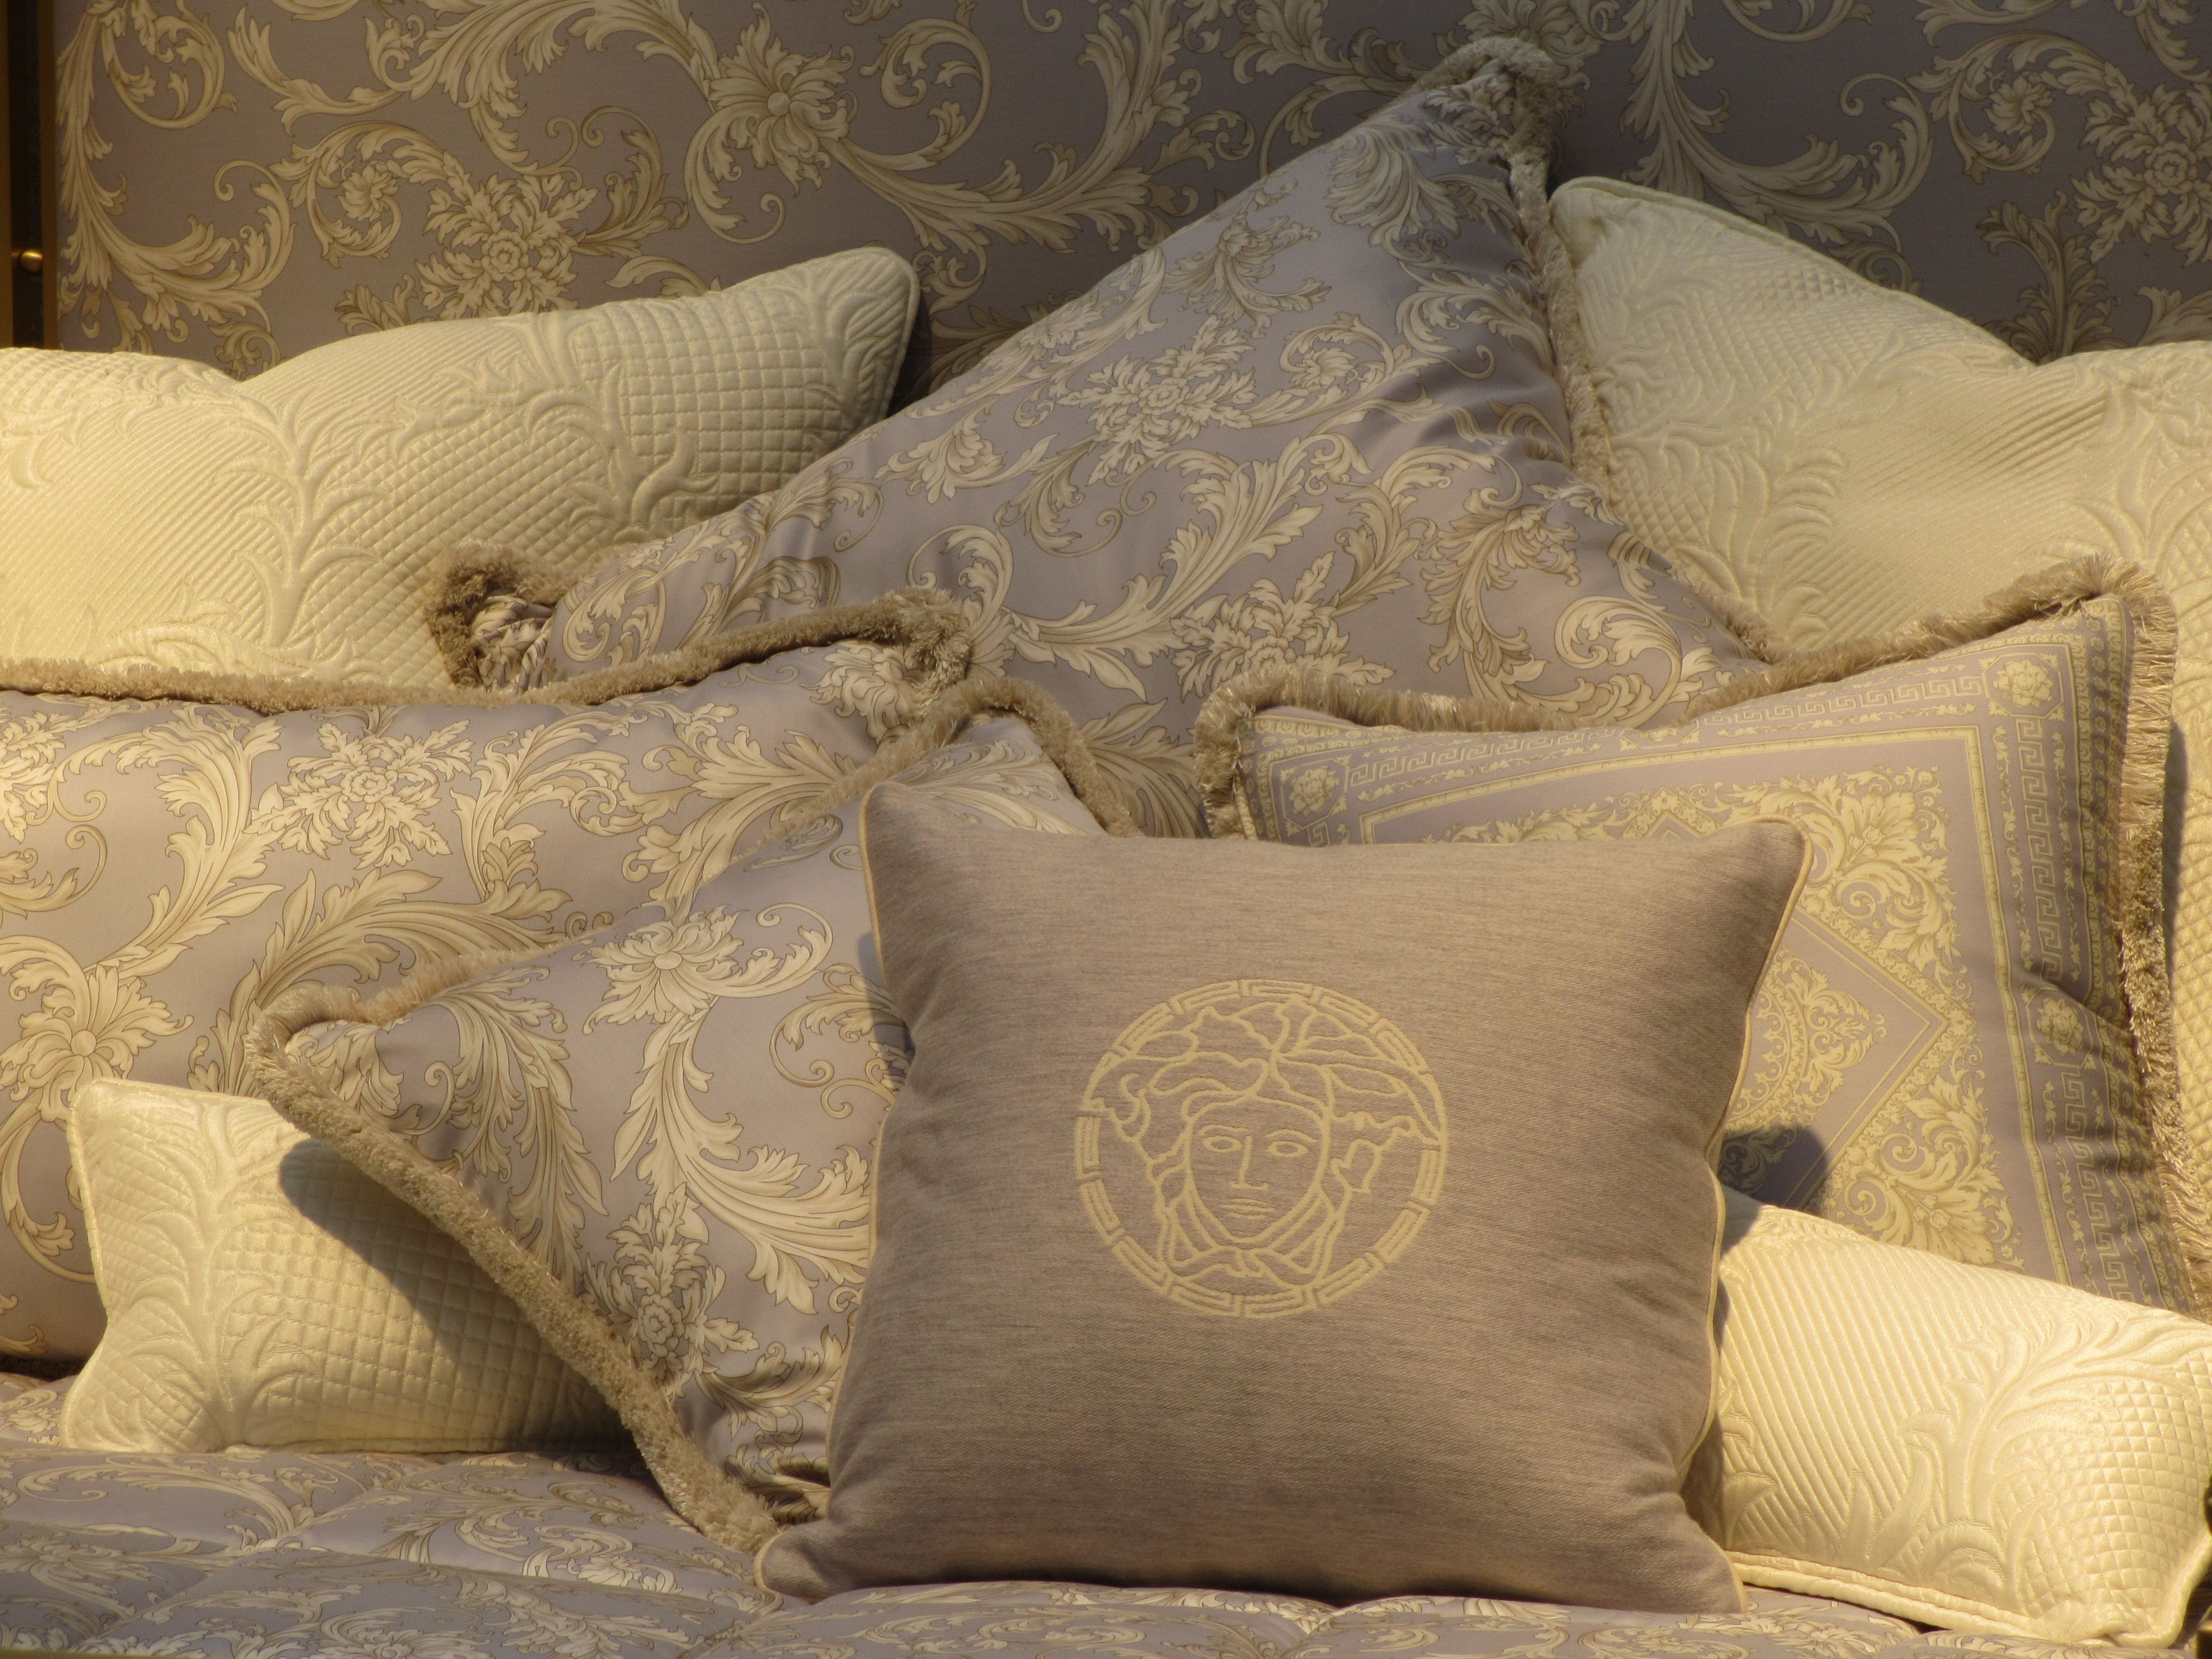 Best Images About Versace Home On Pinterest Color - Home designers collection